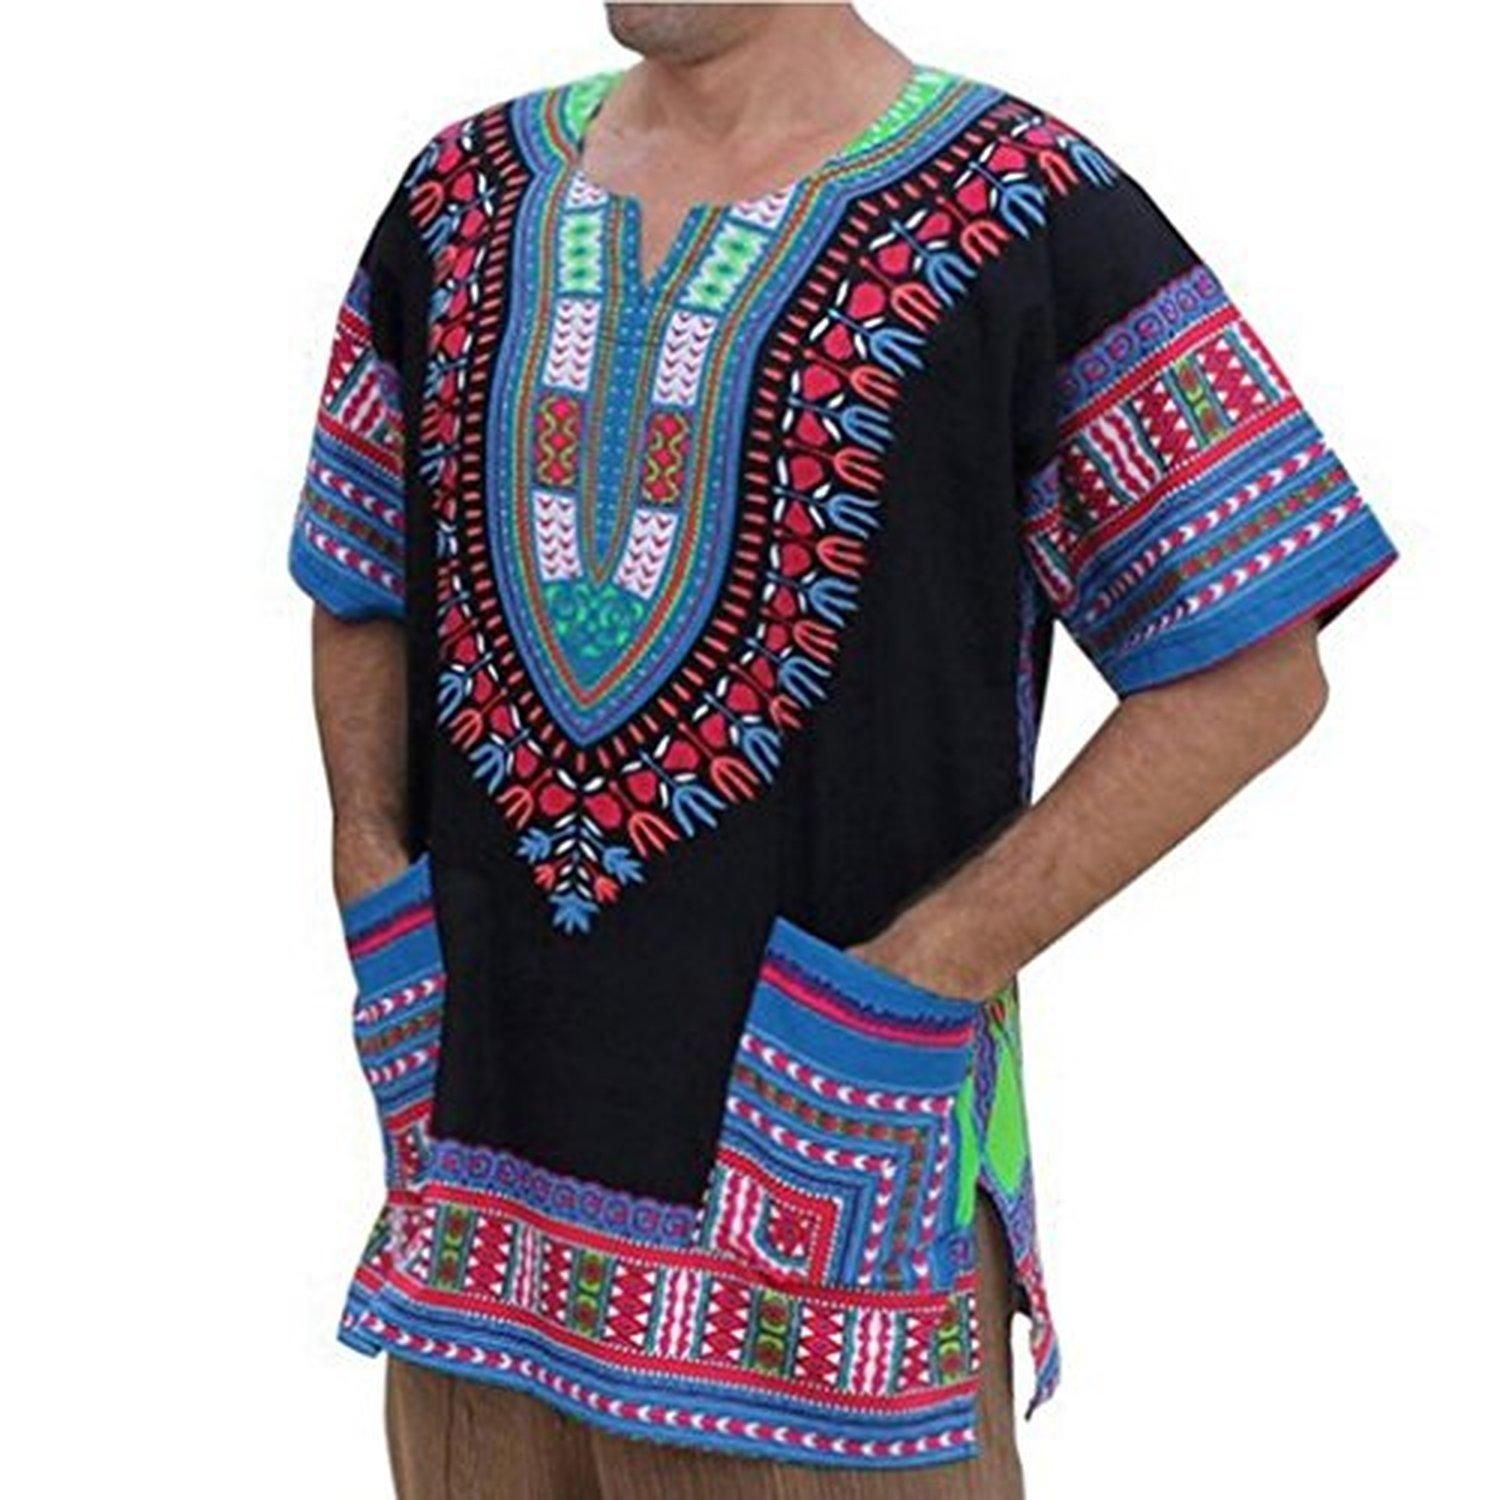 Mallcat Traditional Casual Loose Thailand Style African Print Dashiki T-Shirt (M, Black2) - Brought to you by Avarsha.com